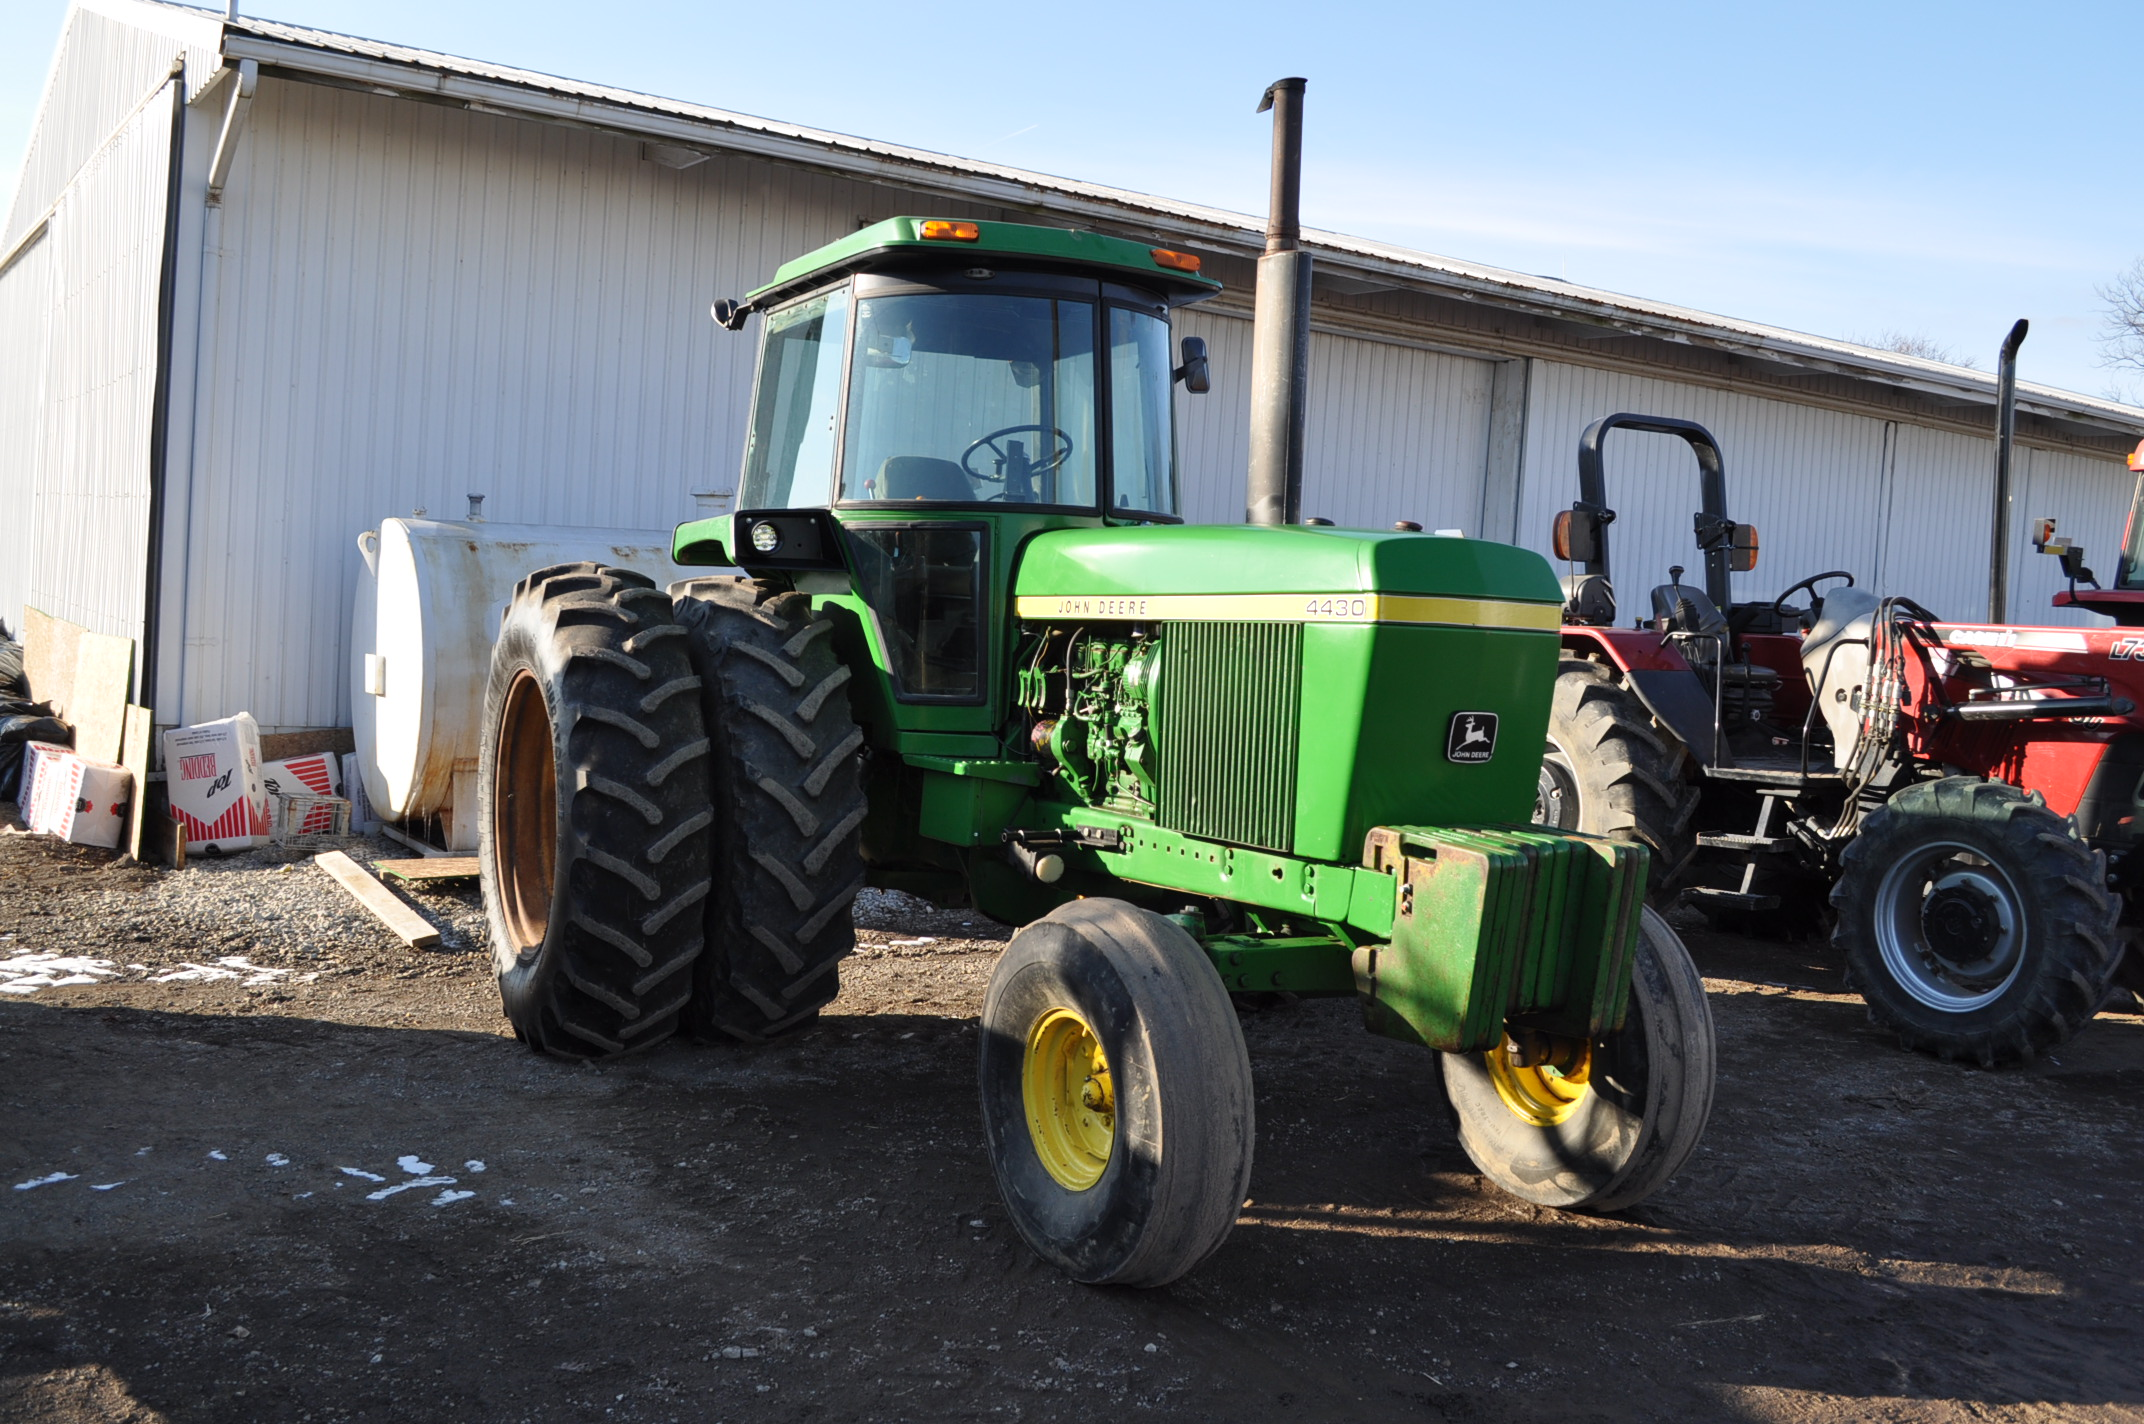 John Deere 4430 tractor, C/H/A, 18.4-38 duals, 11.00-16 front, front weights, Quad range, 2 hyd, 3